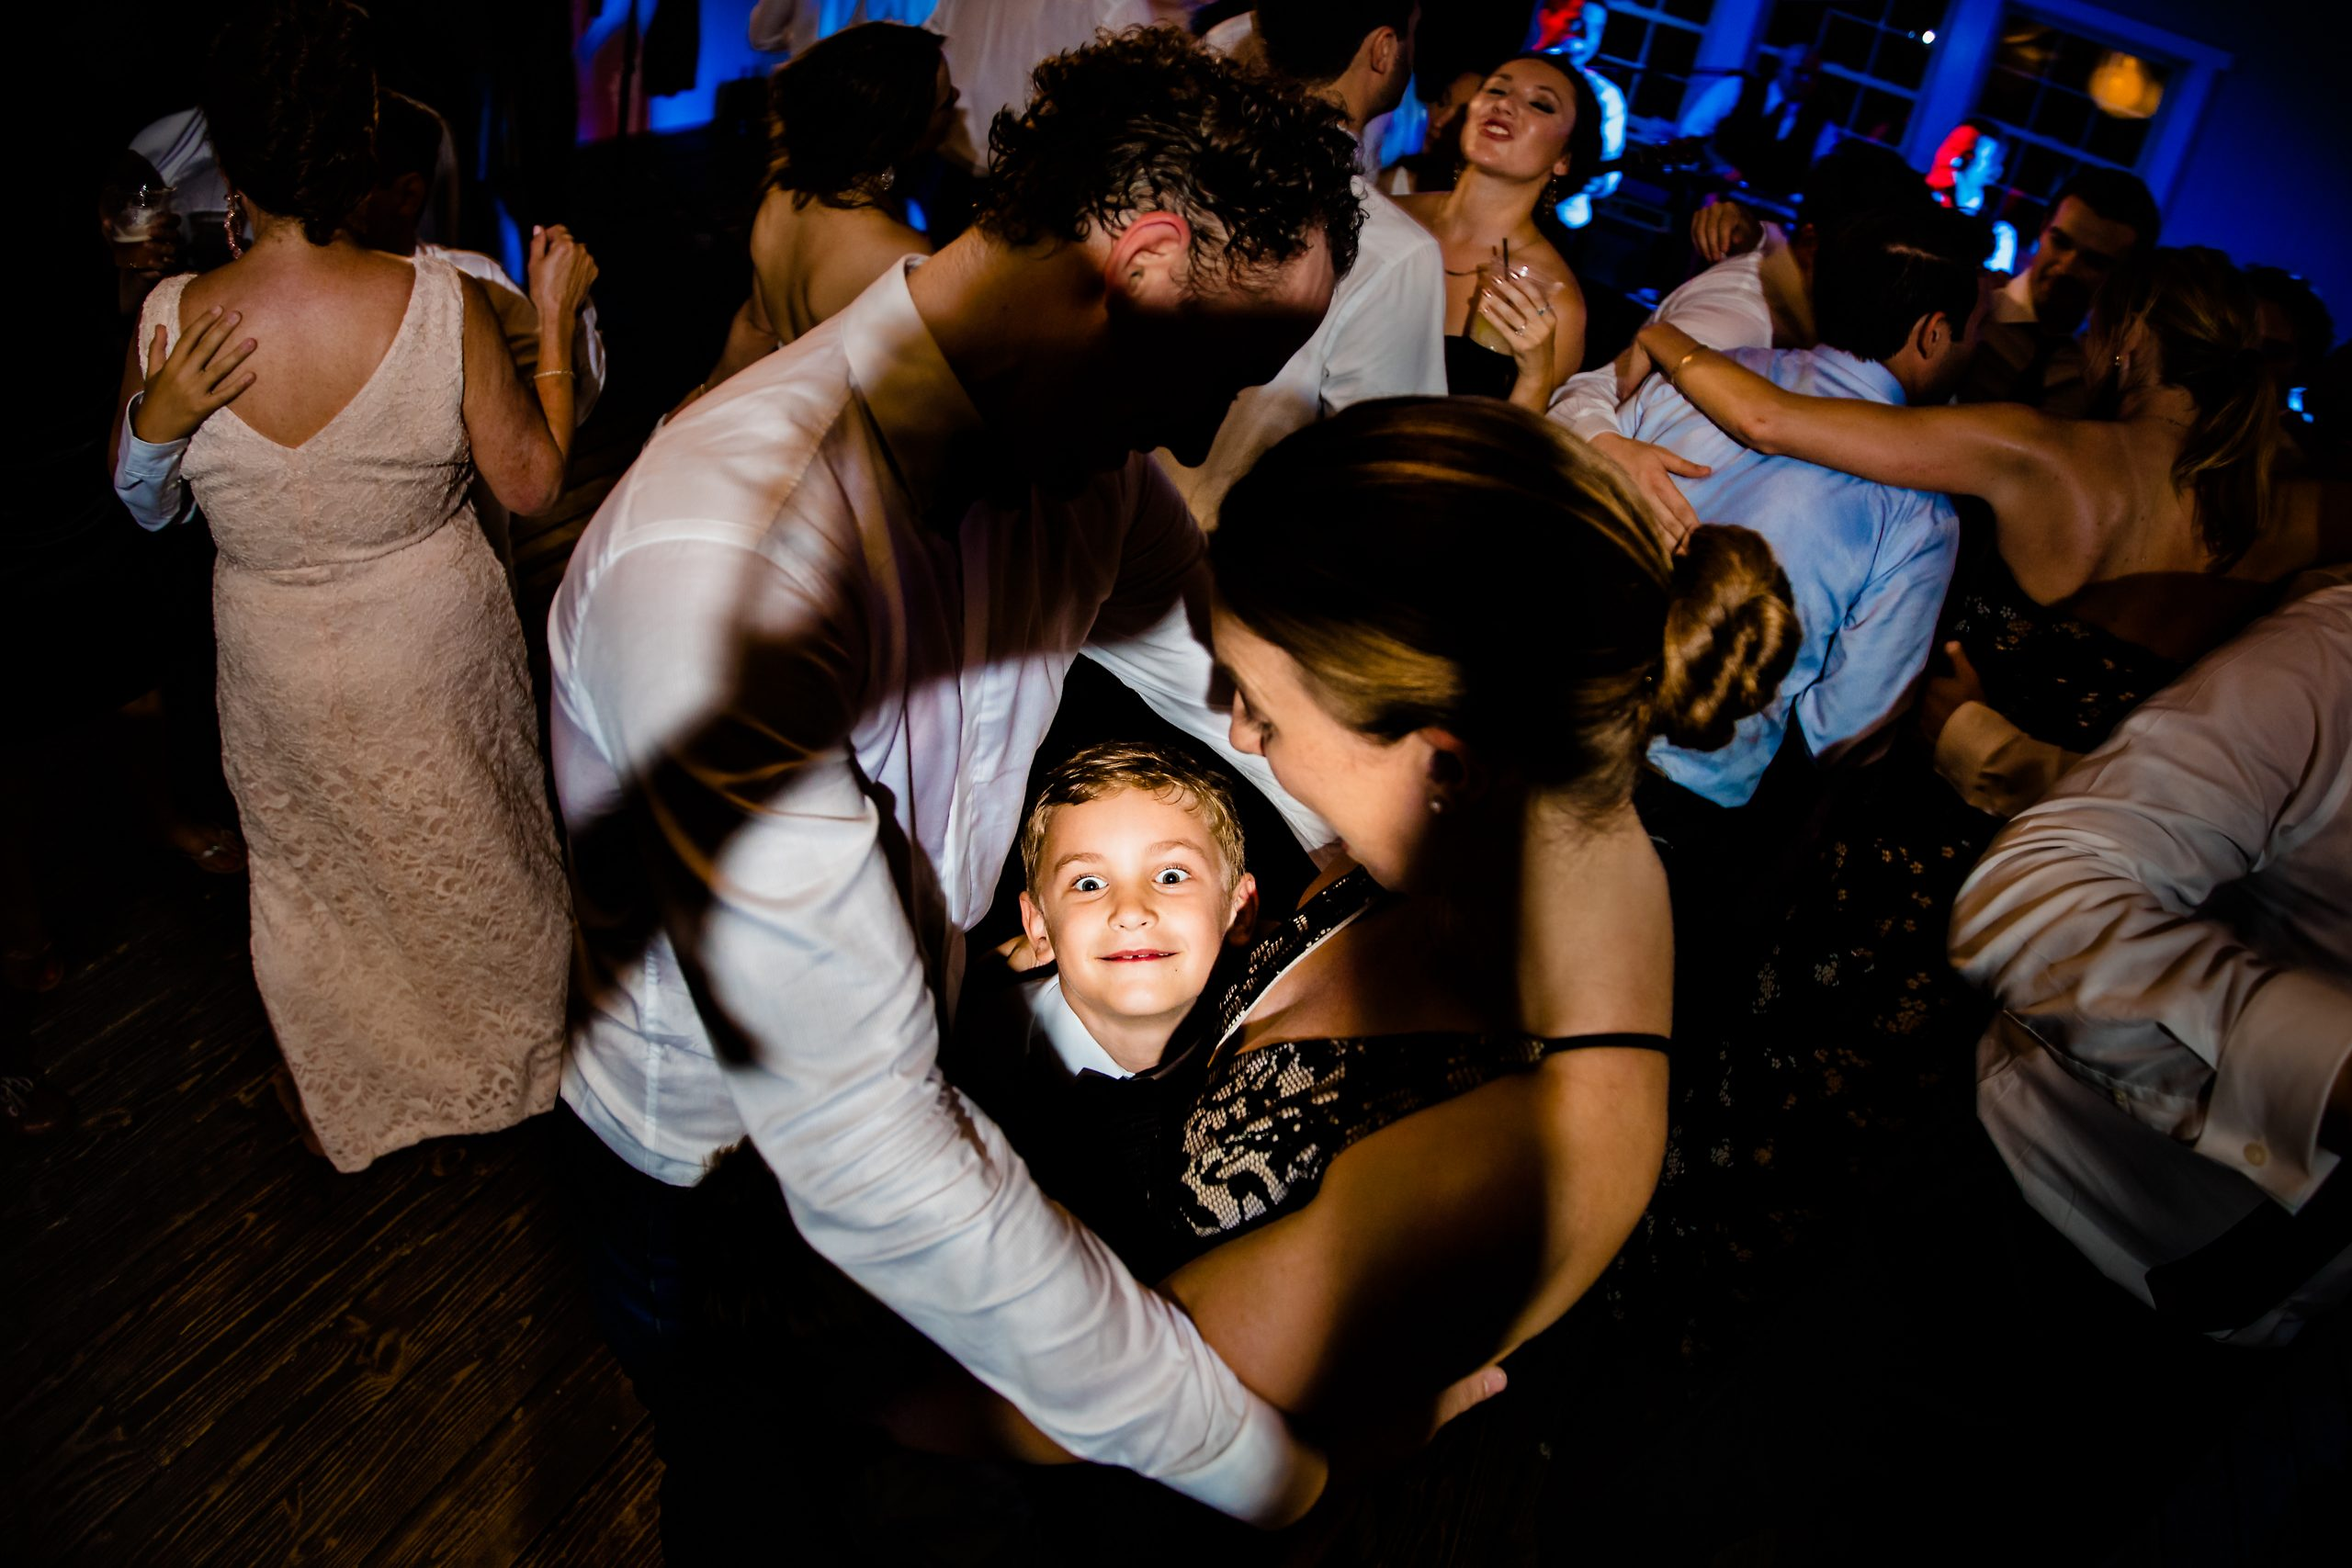 A young boy looks into the camera while on the dance floor